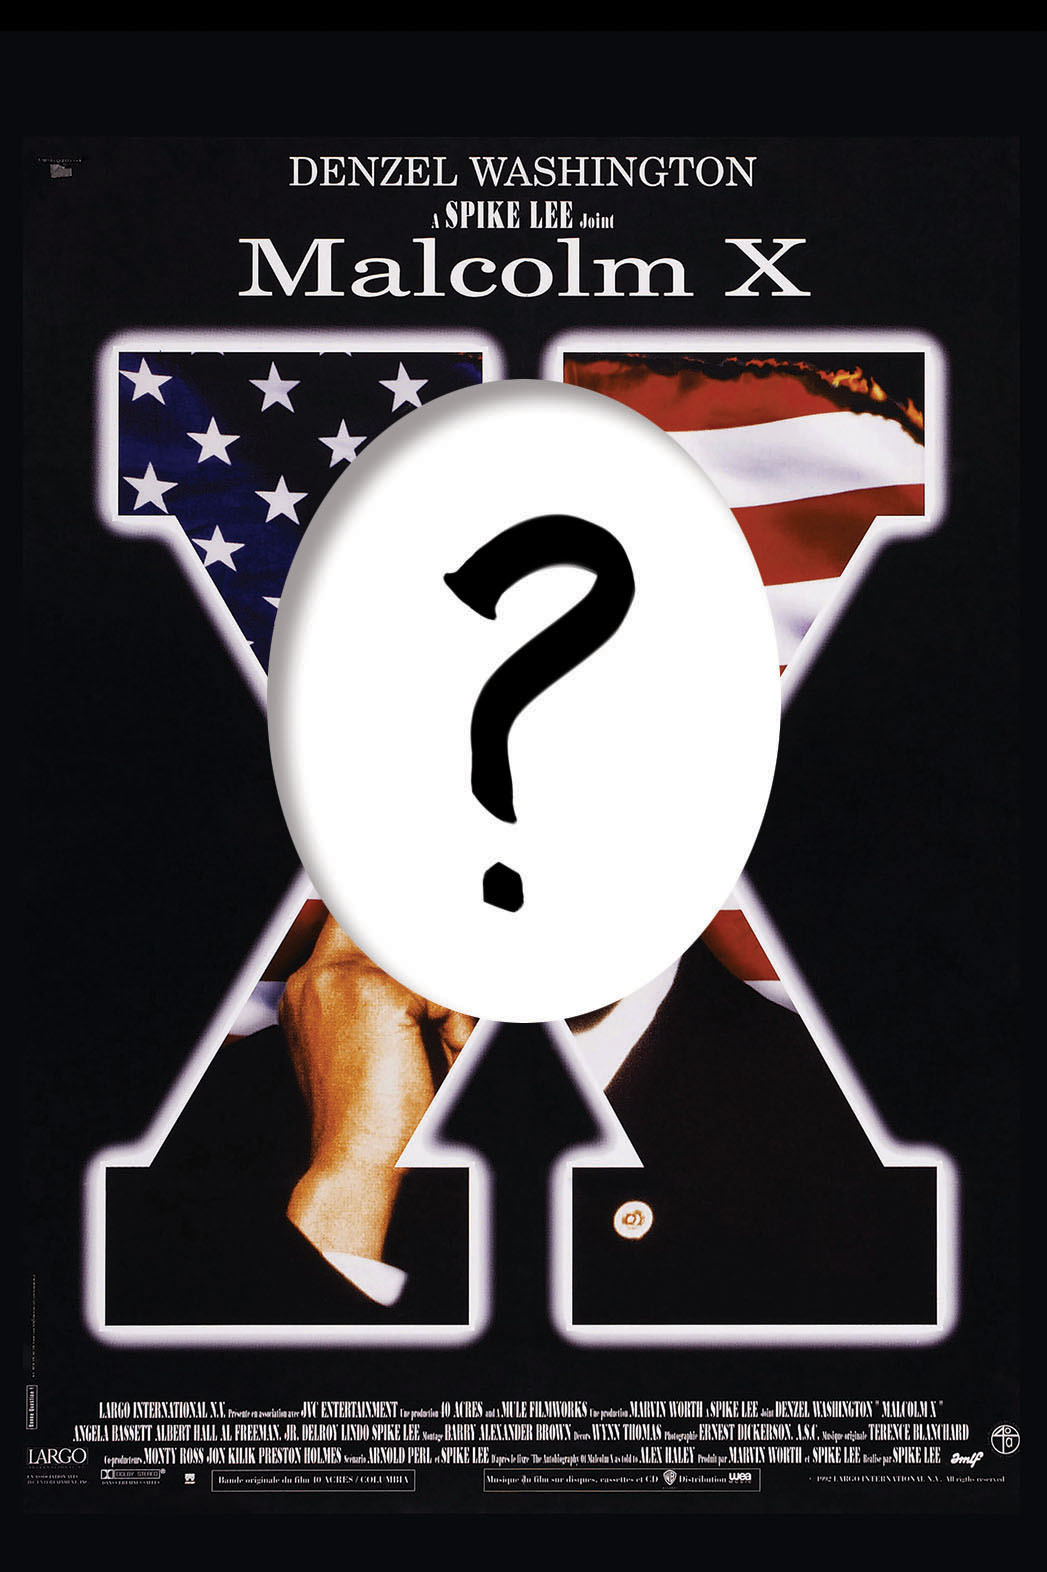 Malcom X Denzel Washington Poster Question Mark - P 2014